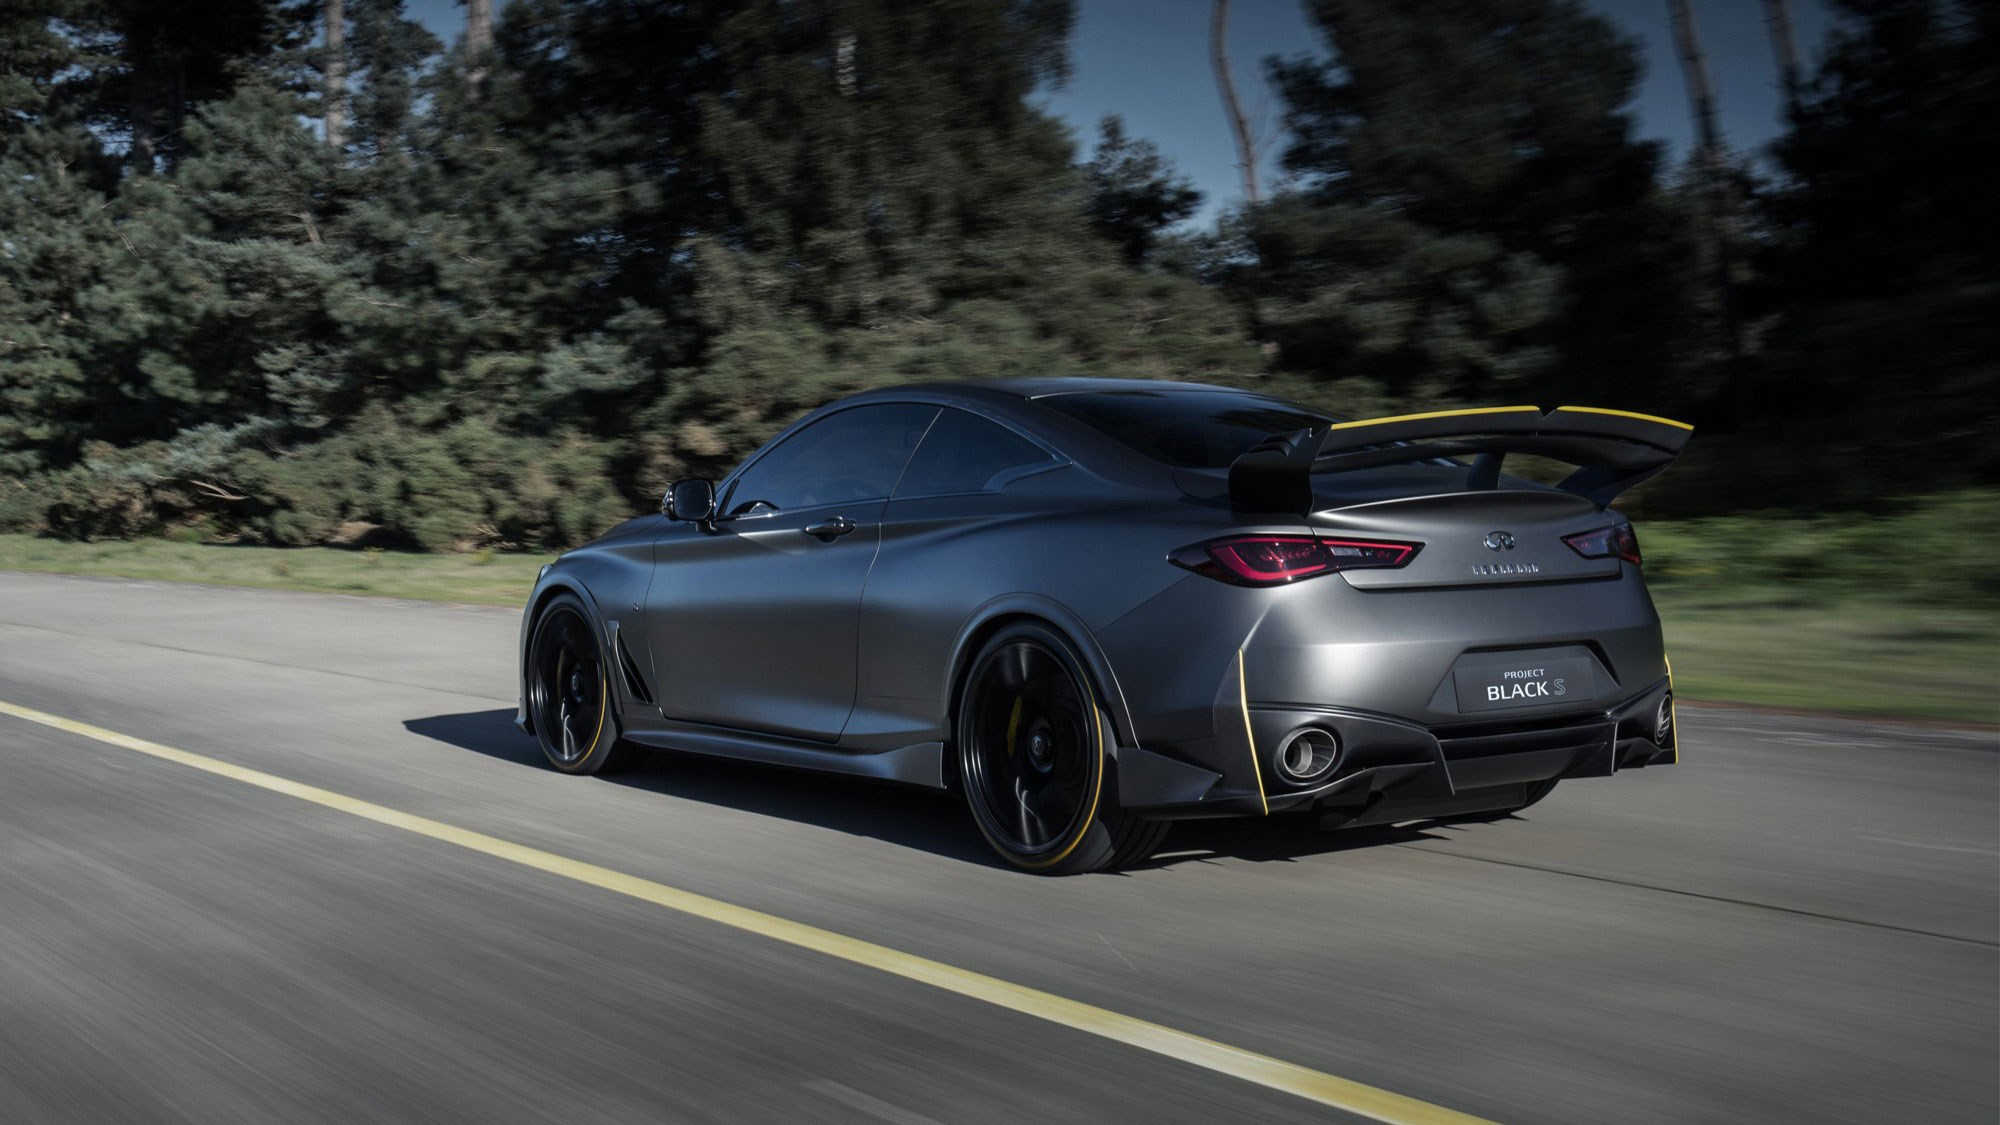 563-horsepower Infiniti Q60 Black S prototype revealed with F1 tech